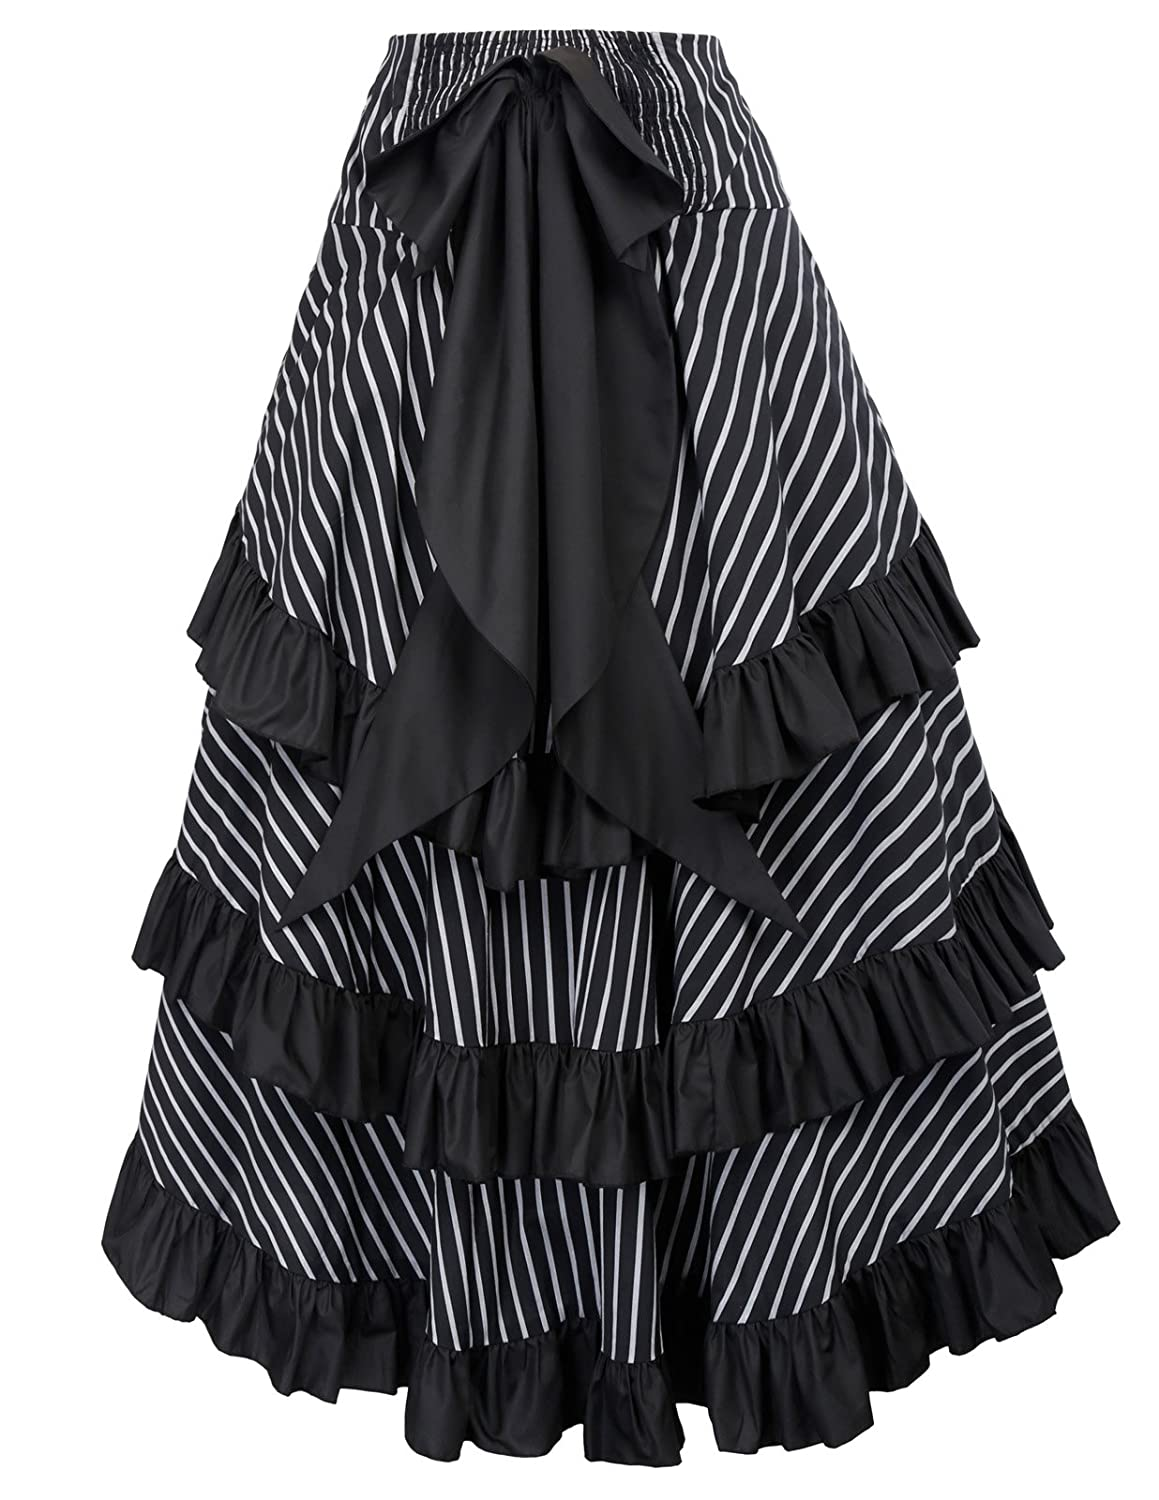 8dc1f07c4d Amazon.com: Belle Poque Striped Steampunk Gothic Victorian High Low Skirt  Bustle Style: Clothing